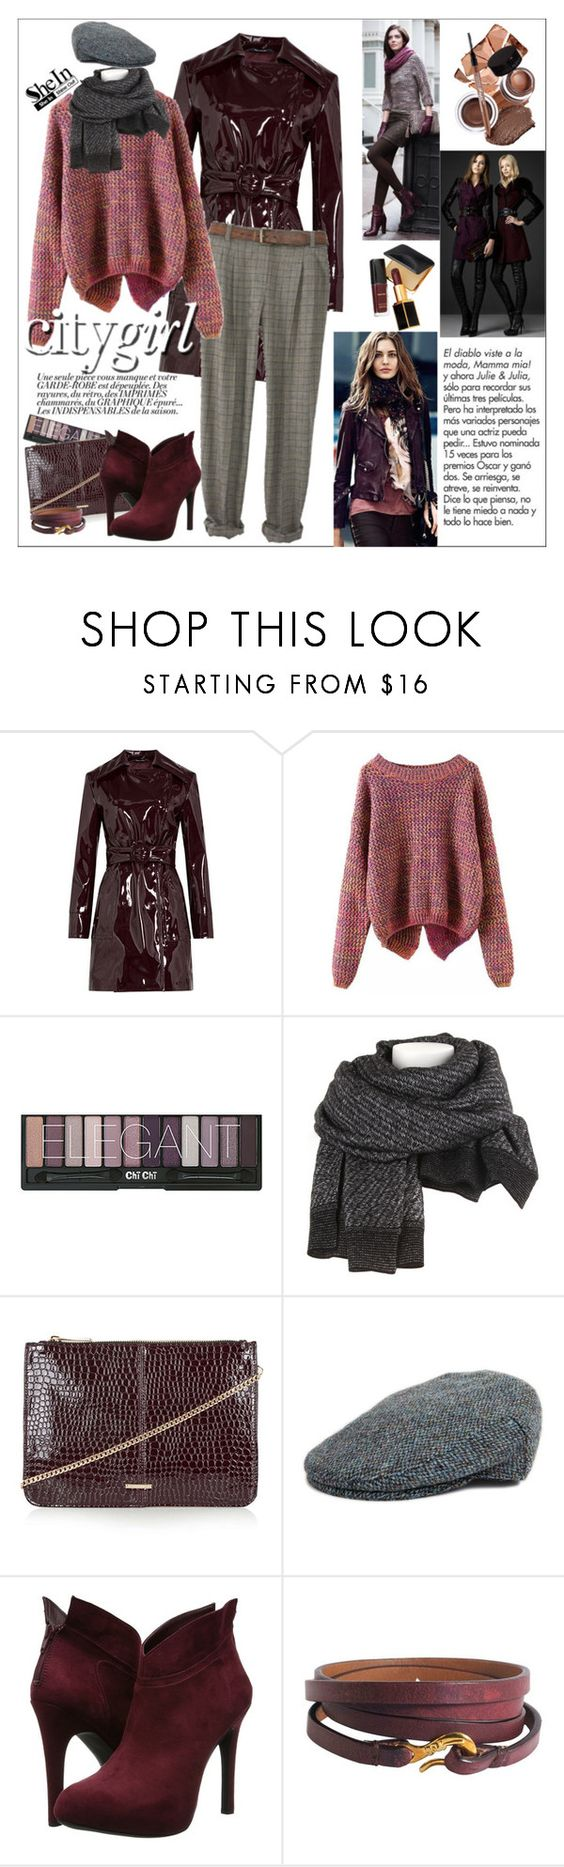 """♡WIN A SHEIN LONG SLEEVE PURPLE SWEATER!♡"" by ceci-alva on Polyvore featuring Mode, November, Maison Margiela, Alexander Wang, Topshop, Failsworth Hats, Tom Ford, Jessica Simpson und Ippolita"